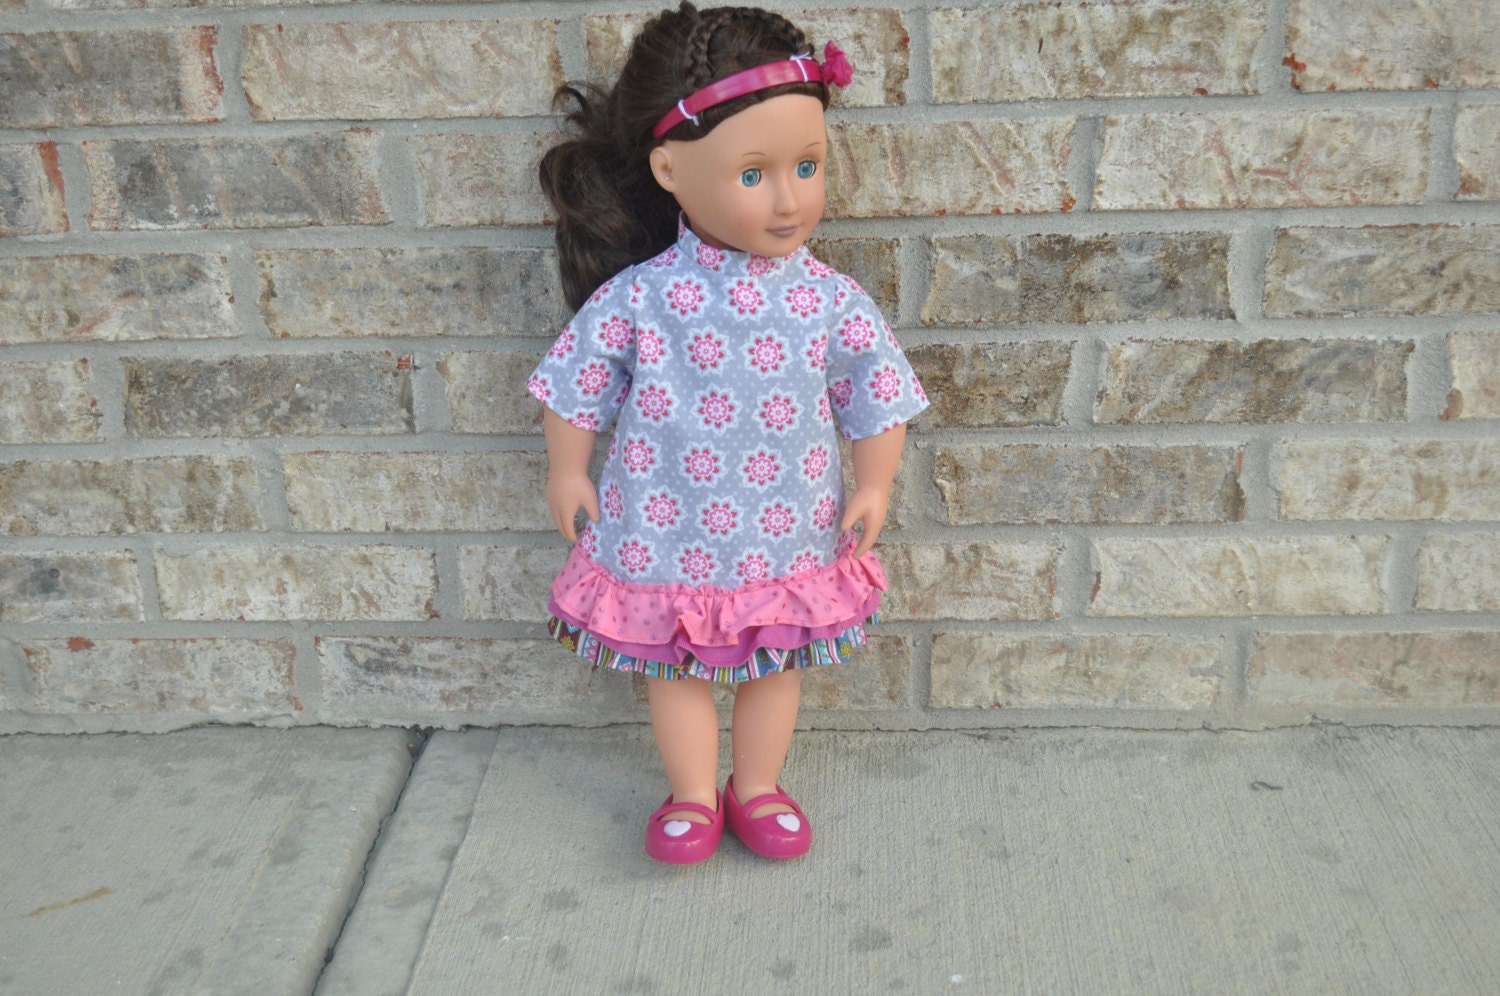 sale american girl doll clothes 18 inch doll clothes. Black Bedroom Furniture Sets. Home Design Ideas